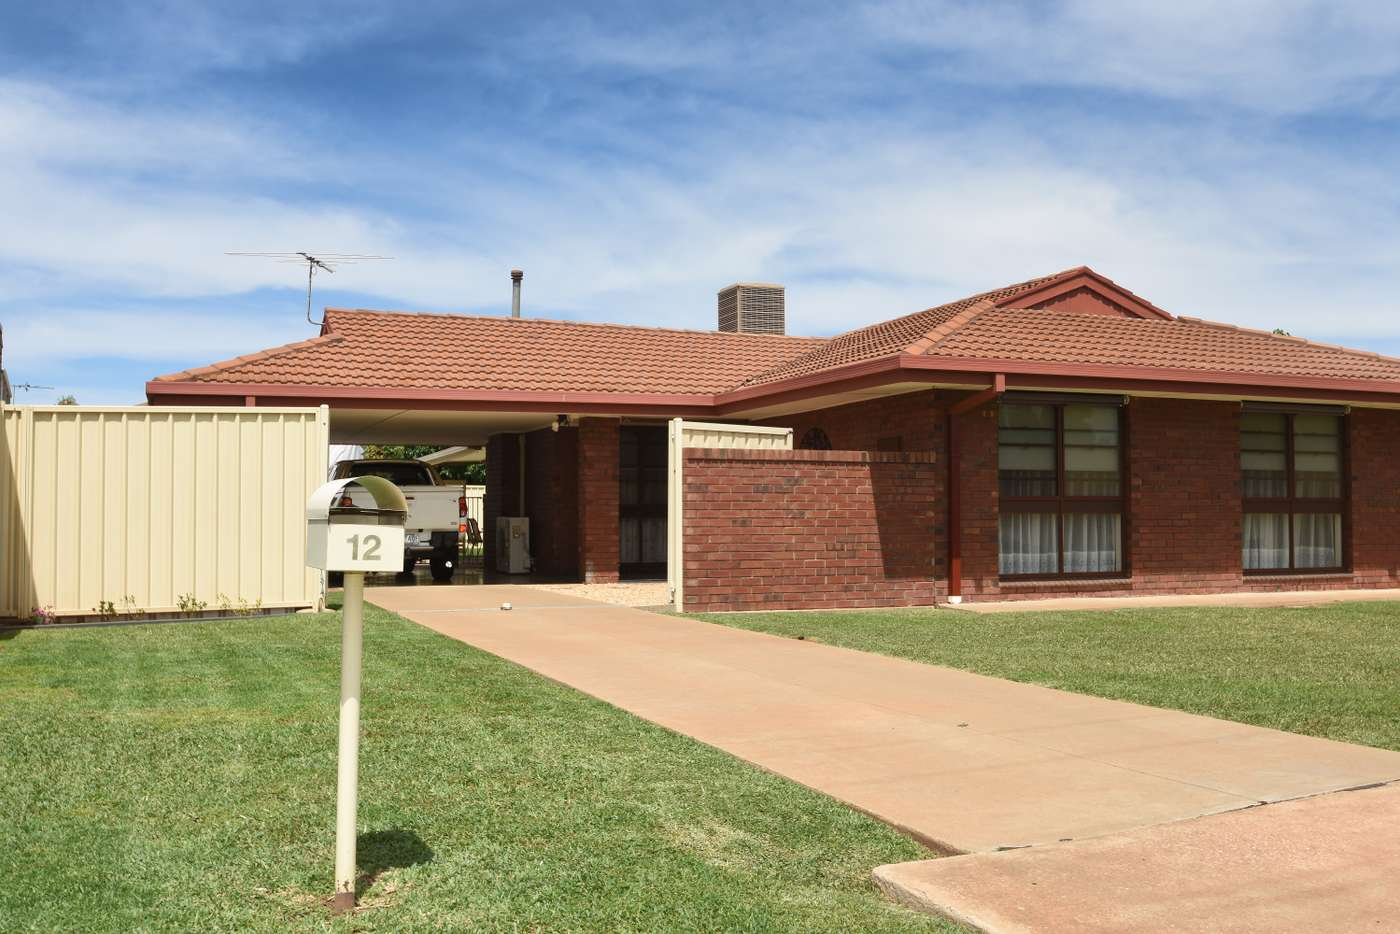 Main view of Homely house listing, 12 Cameron St, Merbein VIC 3505